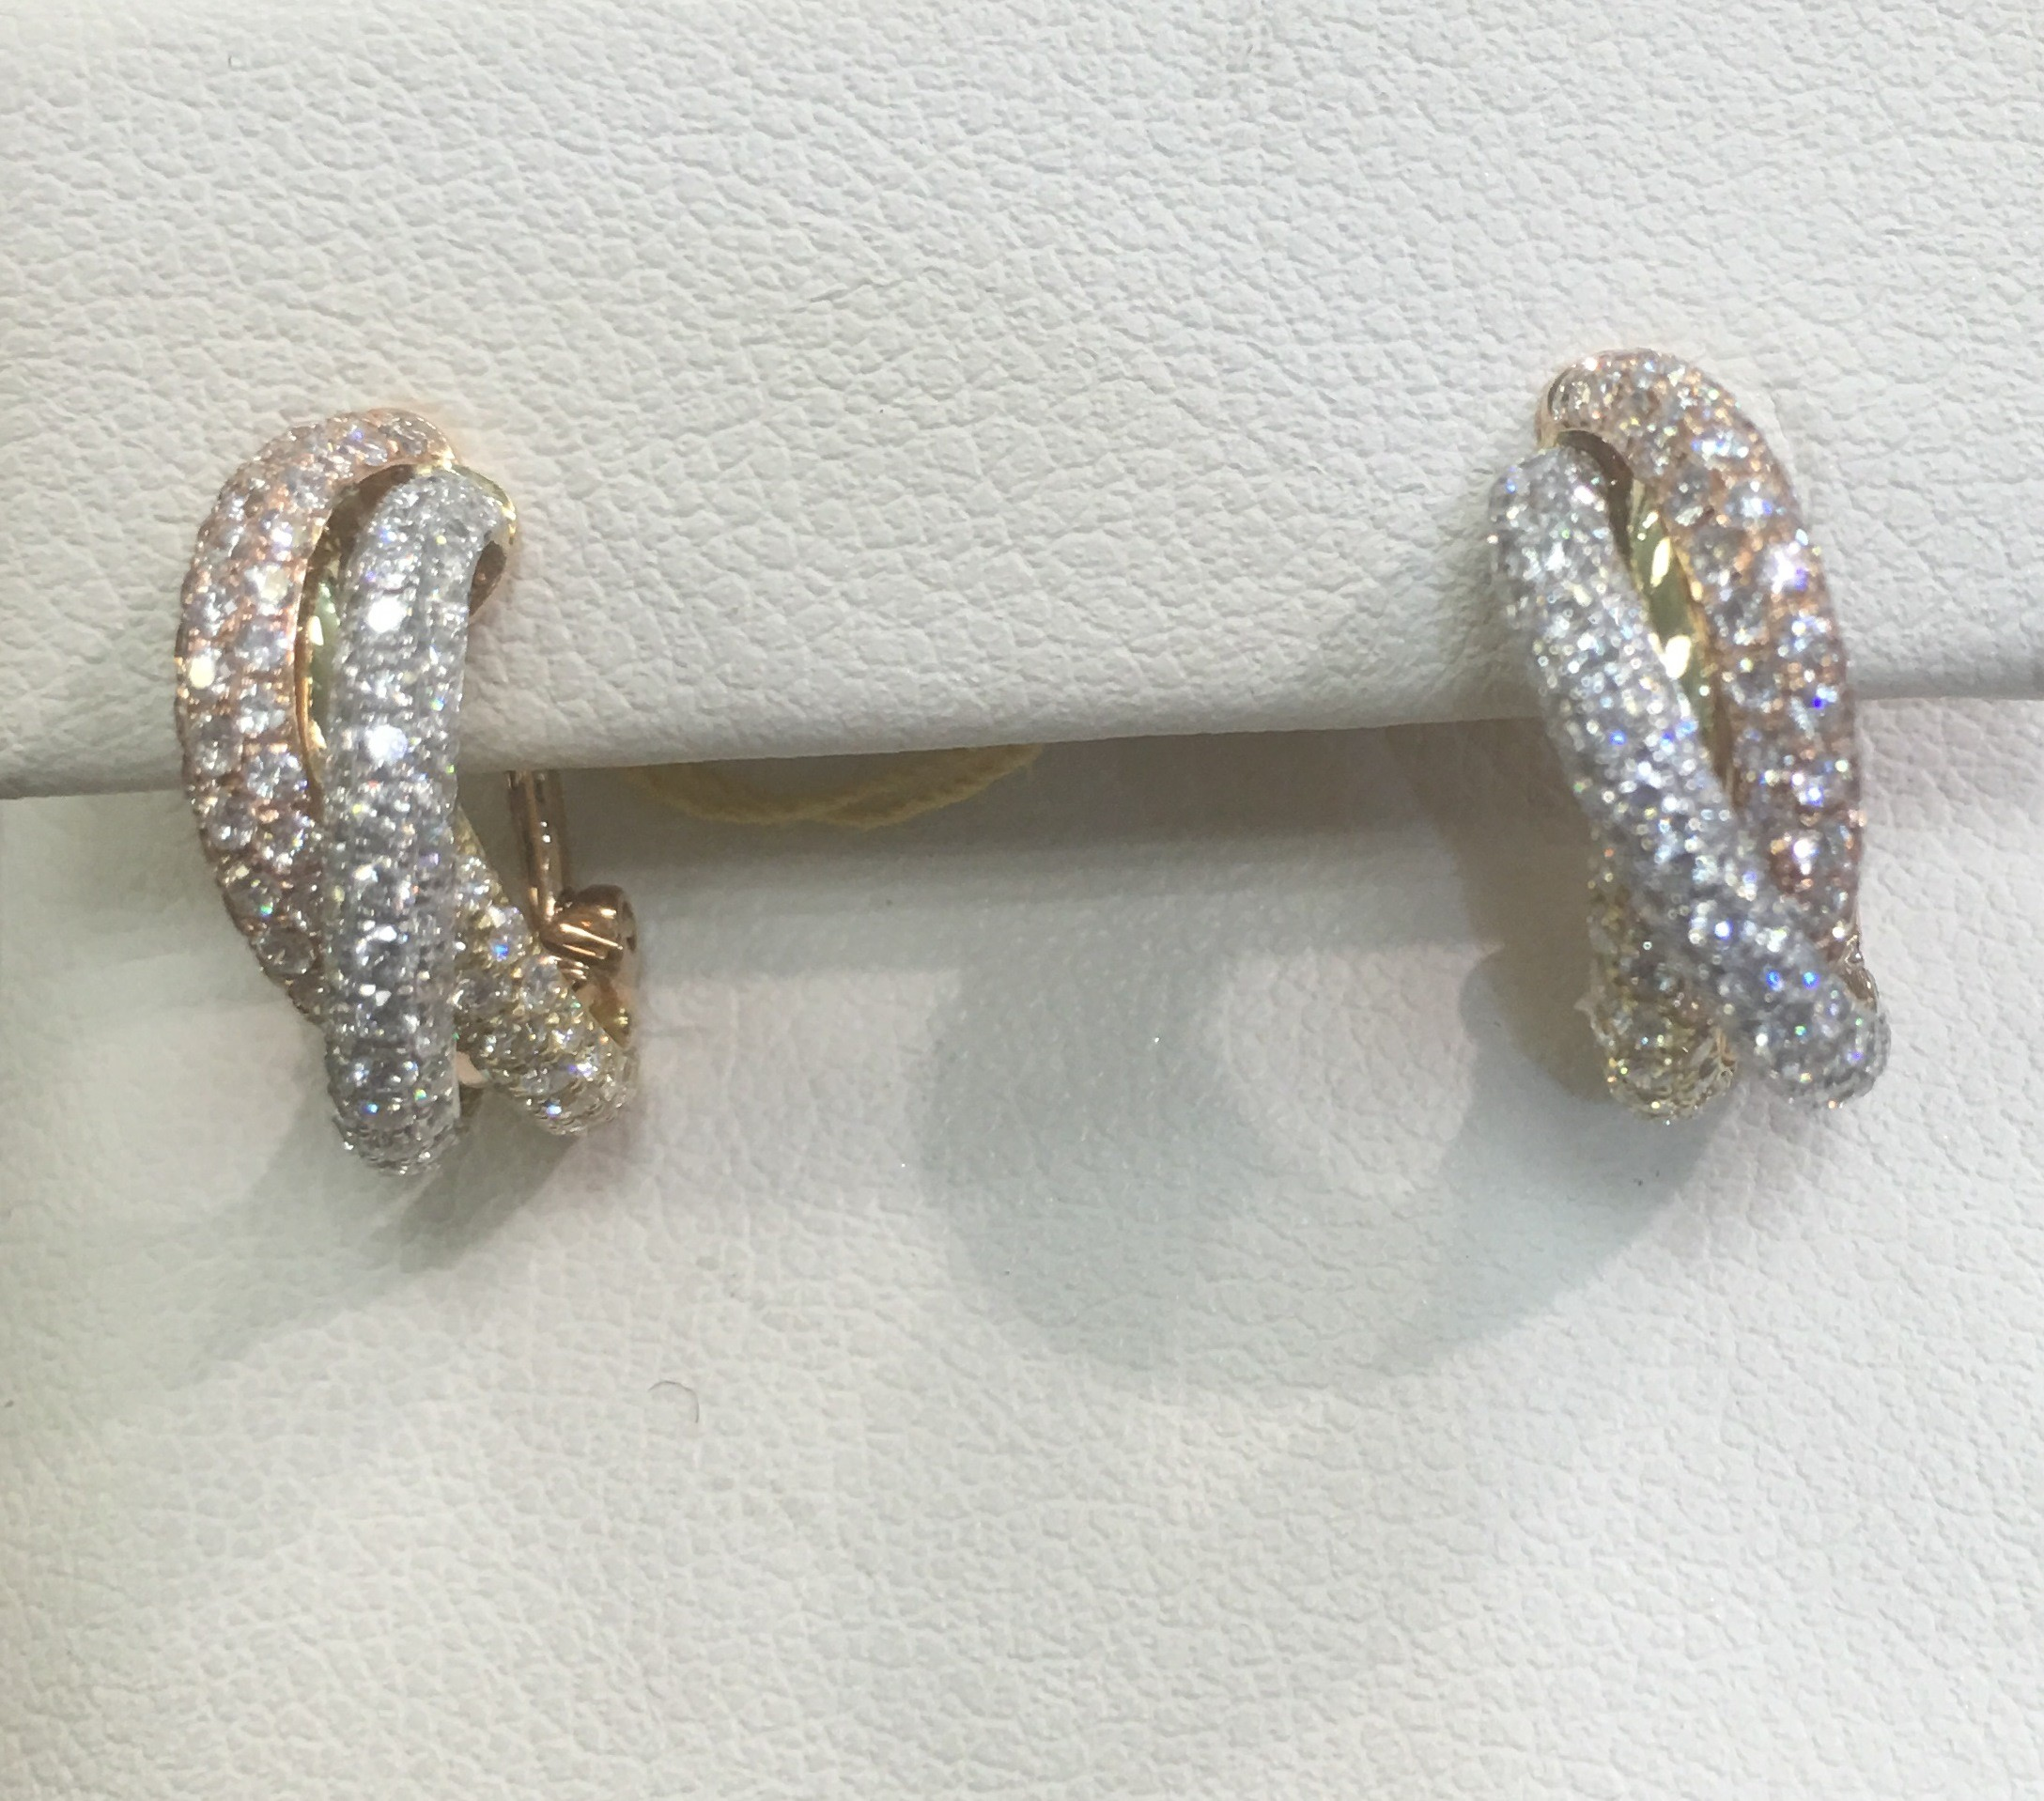 18 karat tricolor diamond earrings